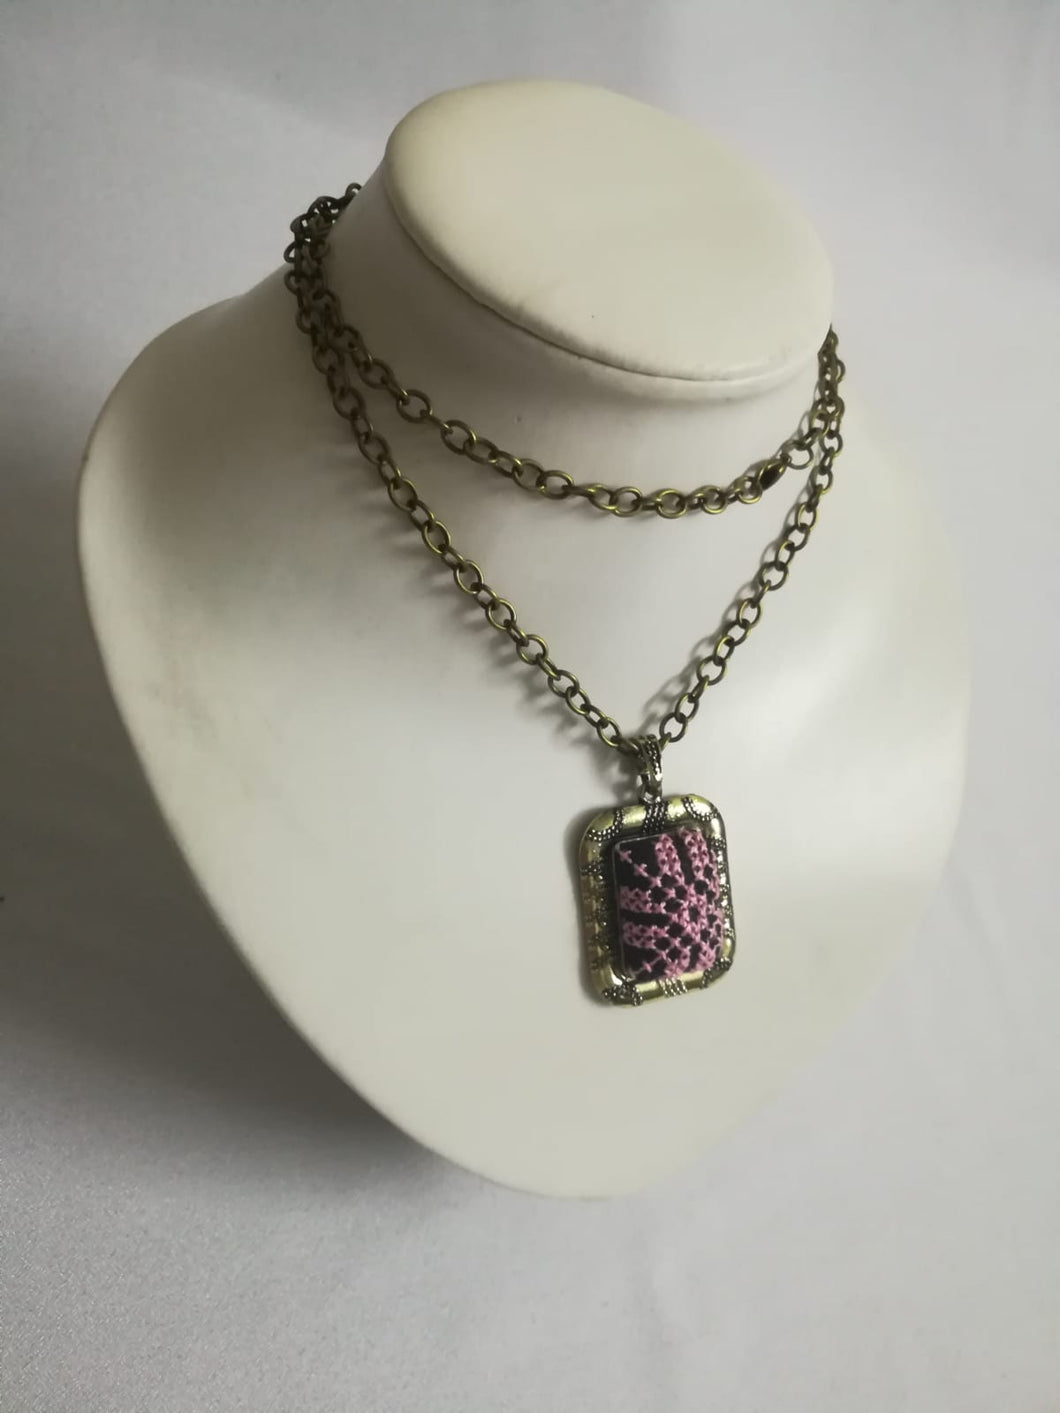 Golden necklace with pink embroidery - Falastini Brand